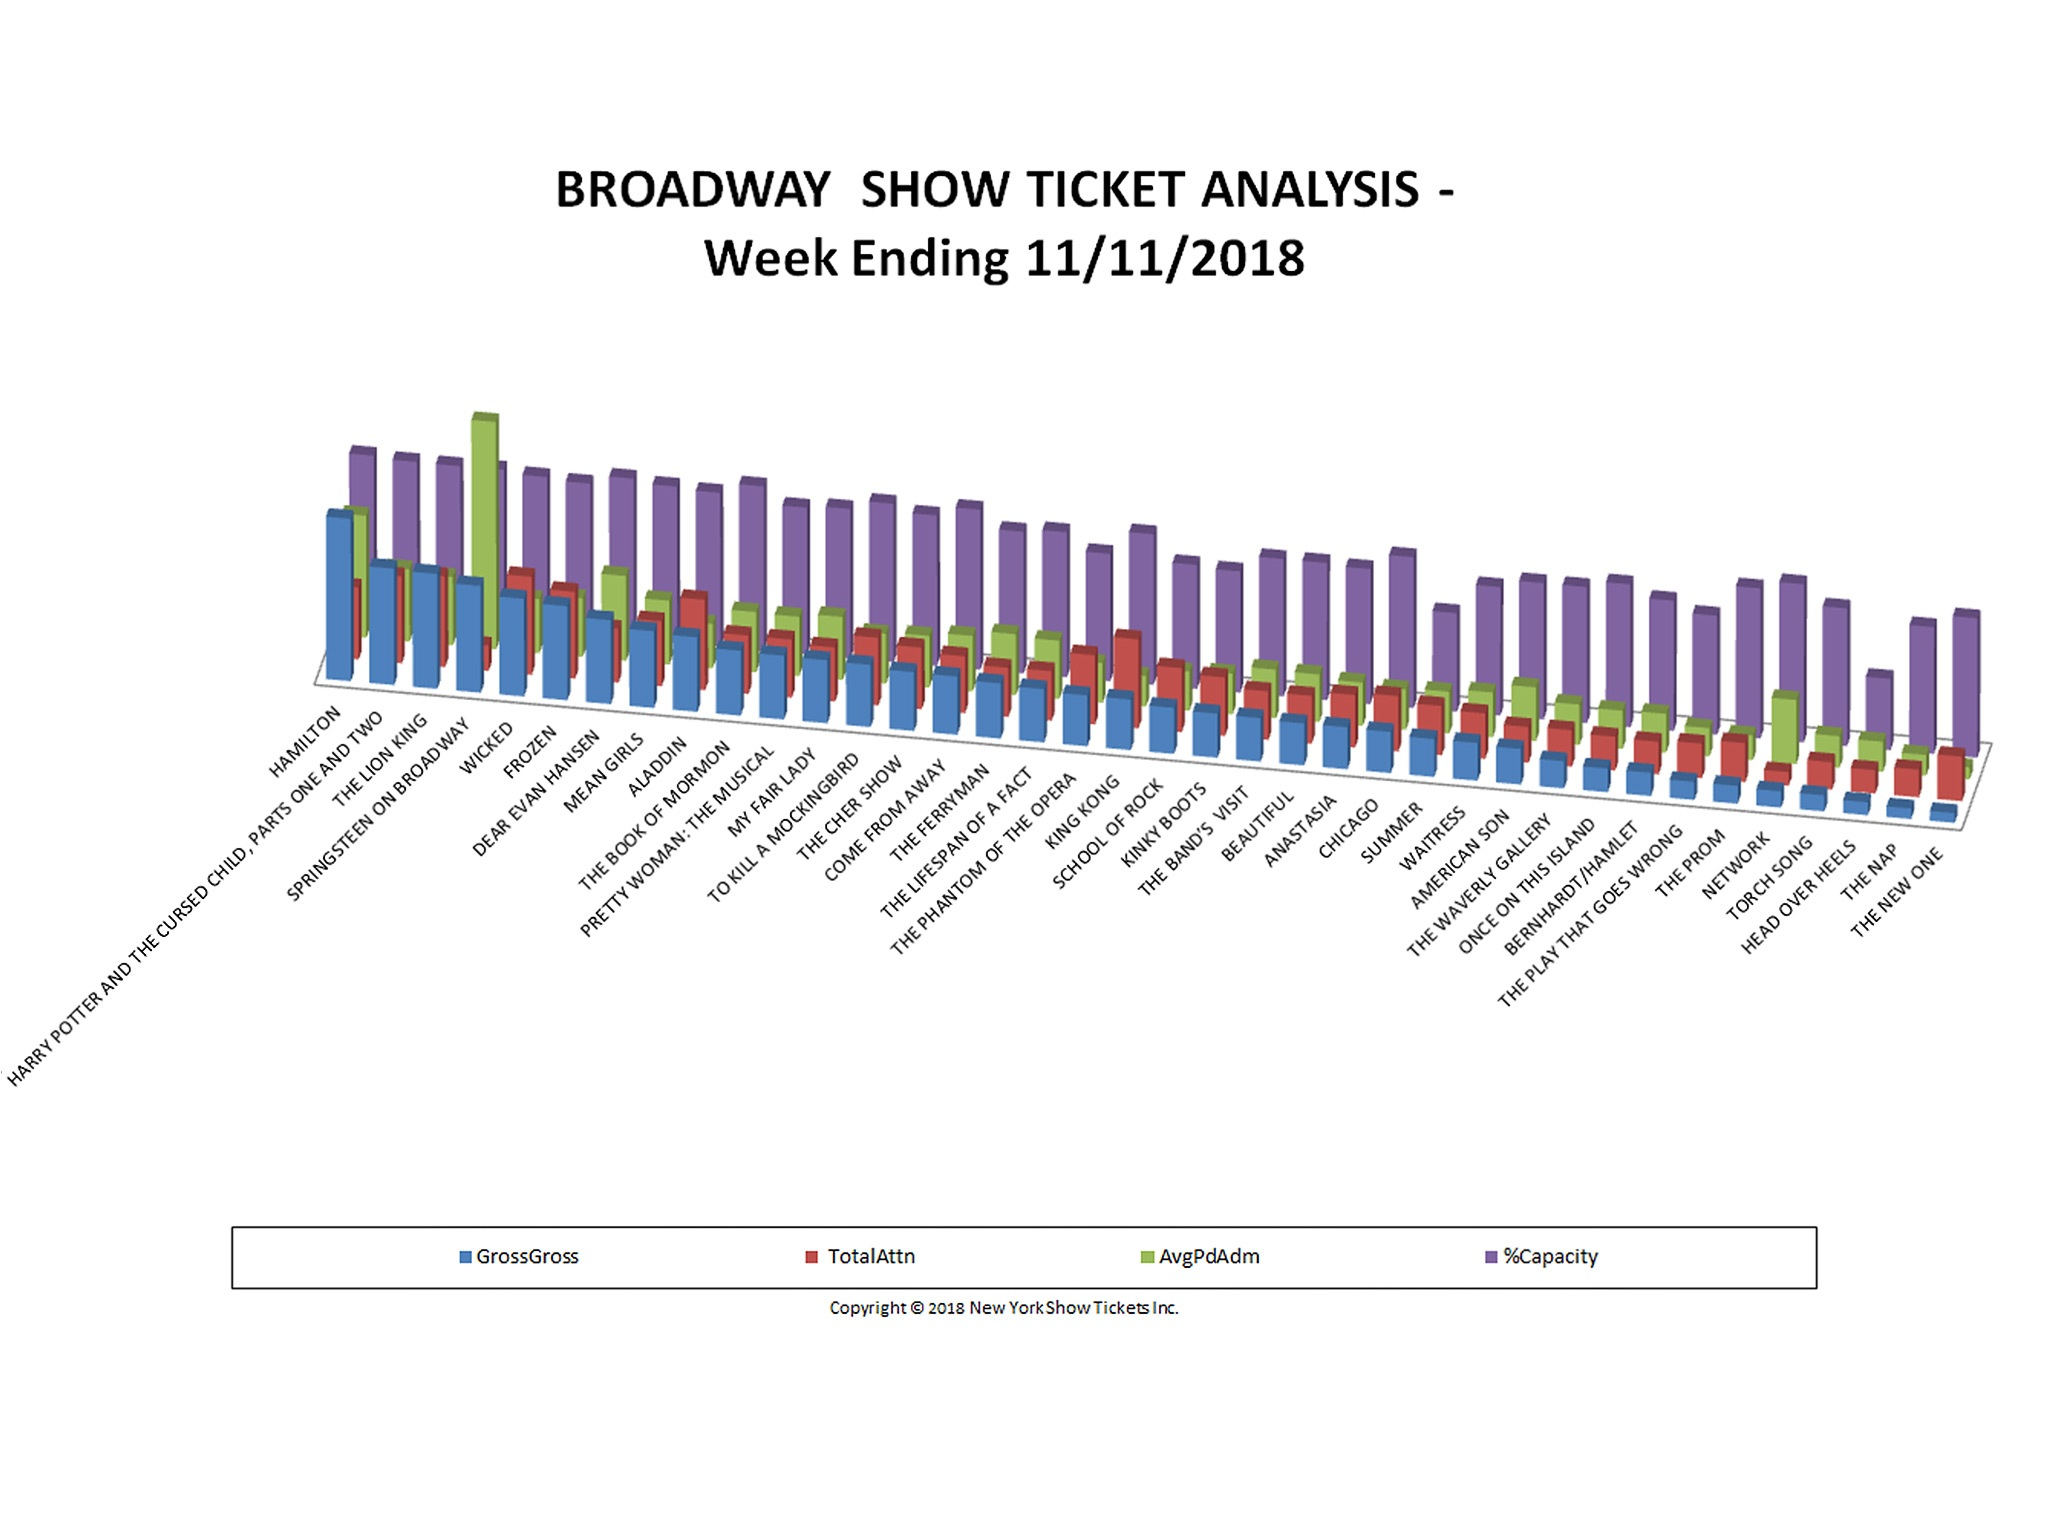 Broadway Show Ticket Sales Analysis Chart 11/11/18